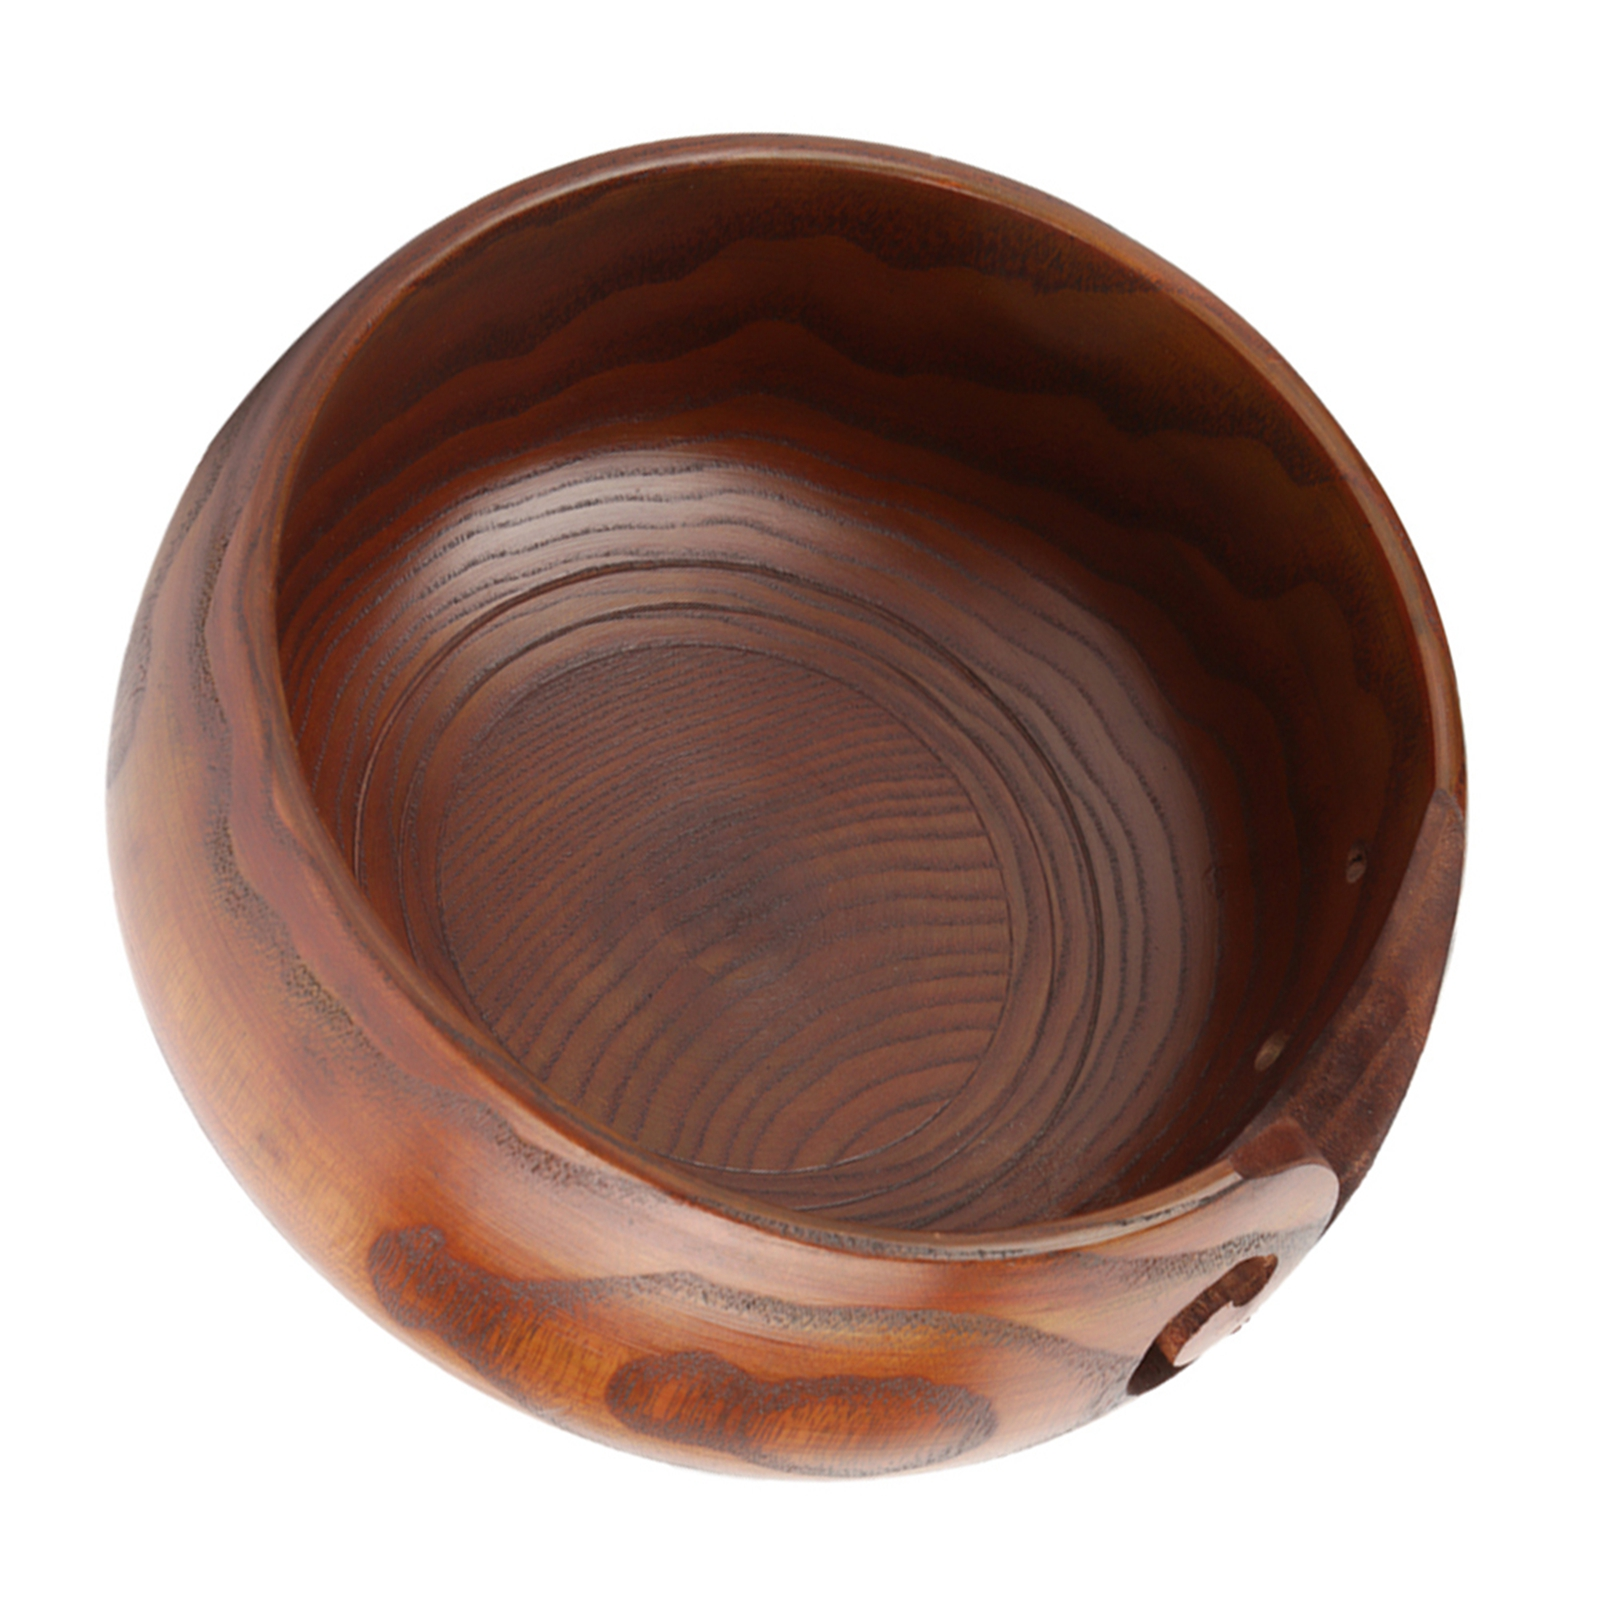 Multi-functional-Handcrafted-Classic-Wooden-Knitting-Yarn-Bowl-Ashtray-2-Sizes thumbnail 10